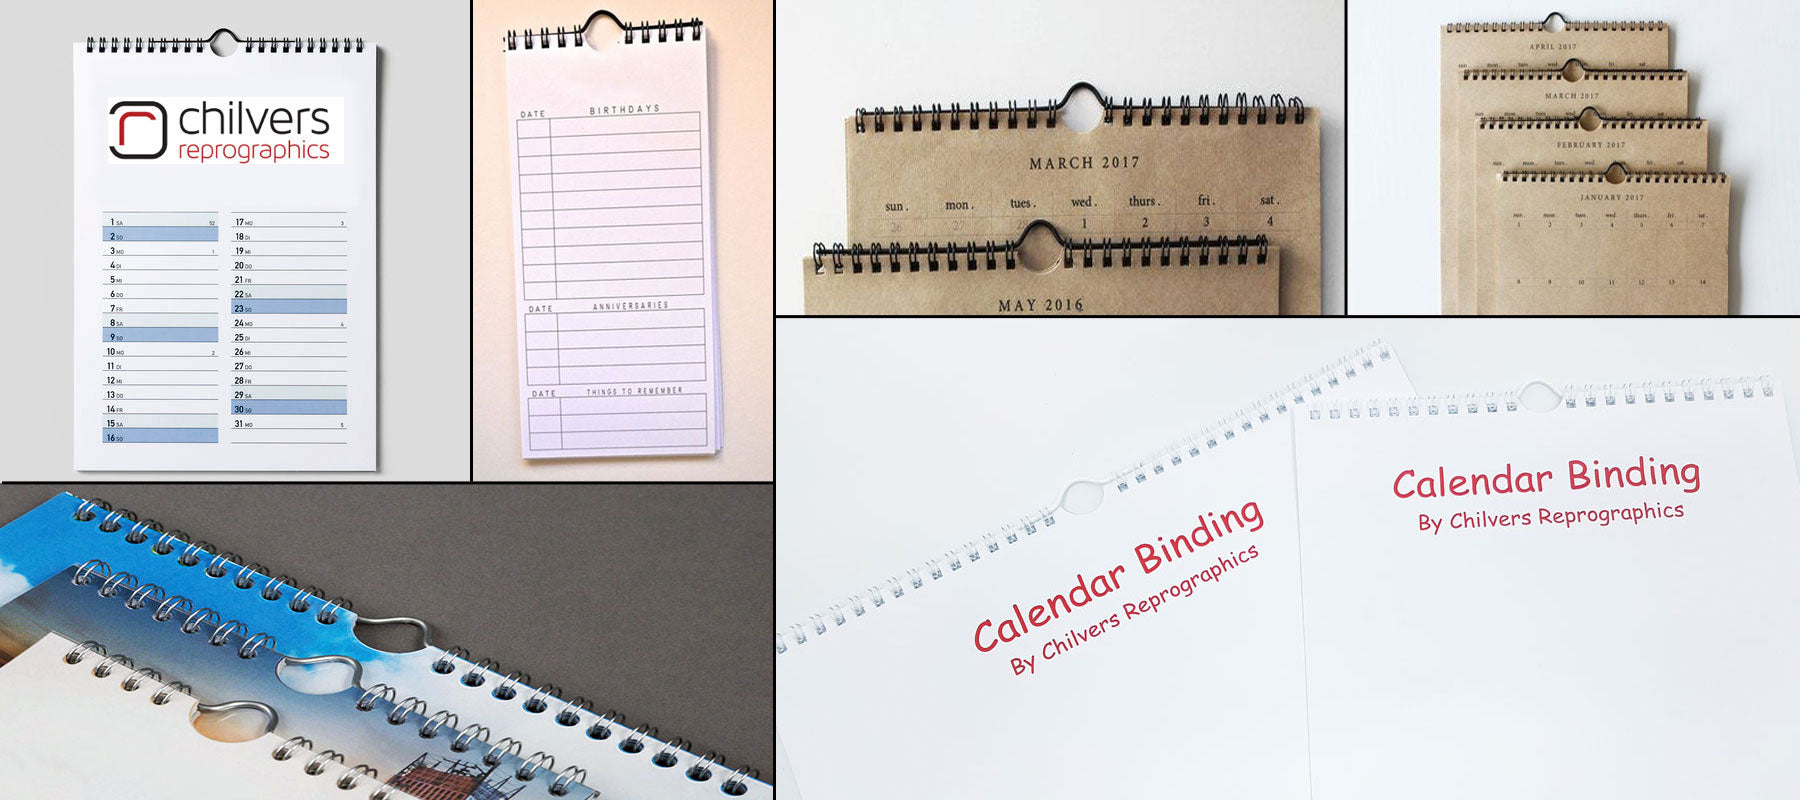 Calendar binding made easy